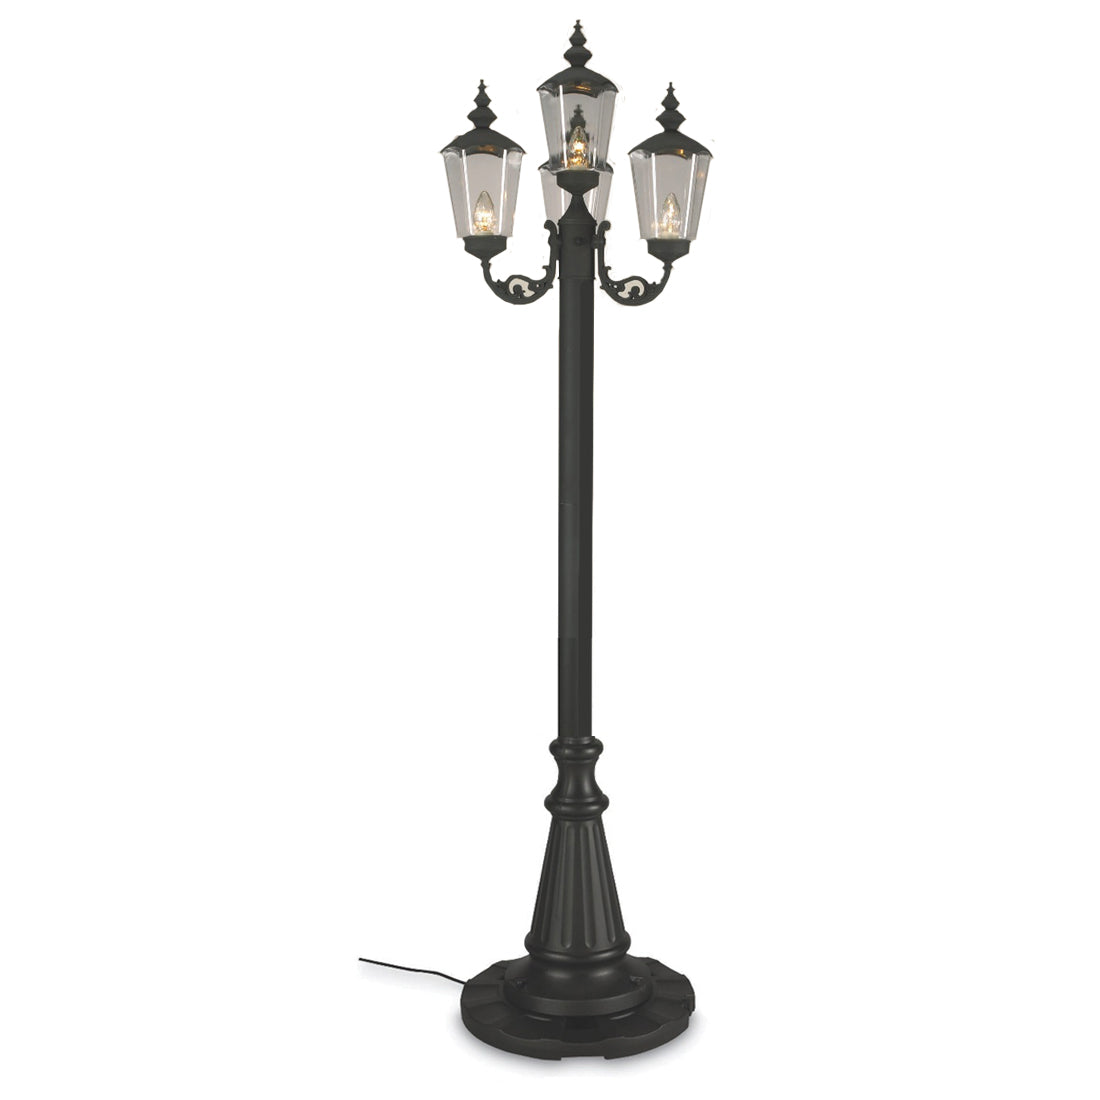 Cambridge 00440 Four Lantern Patio Lamp, Park Style